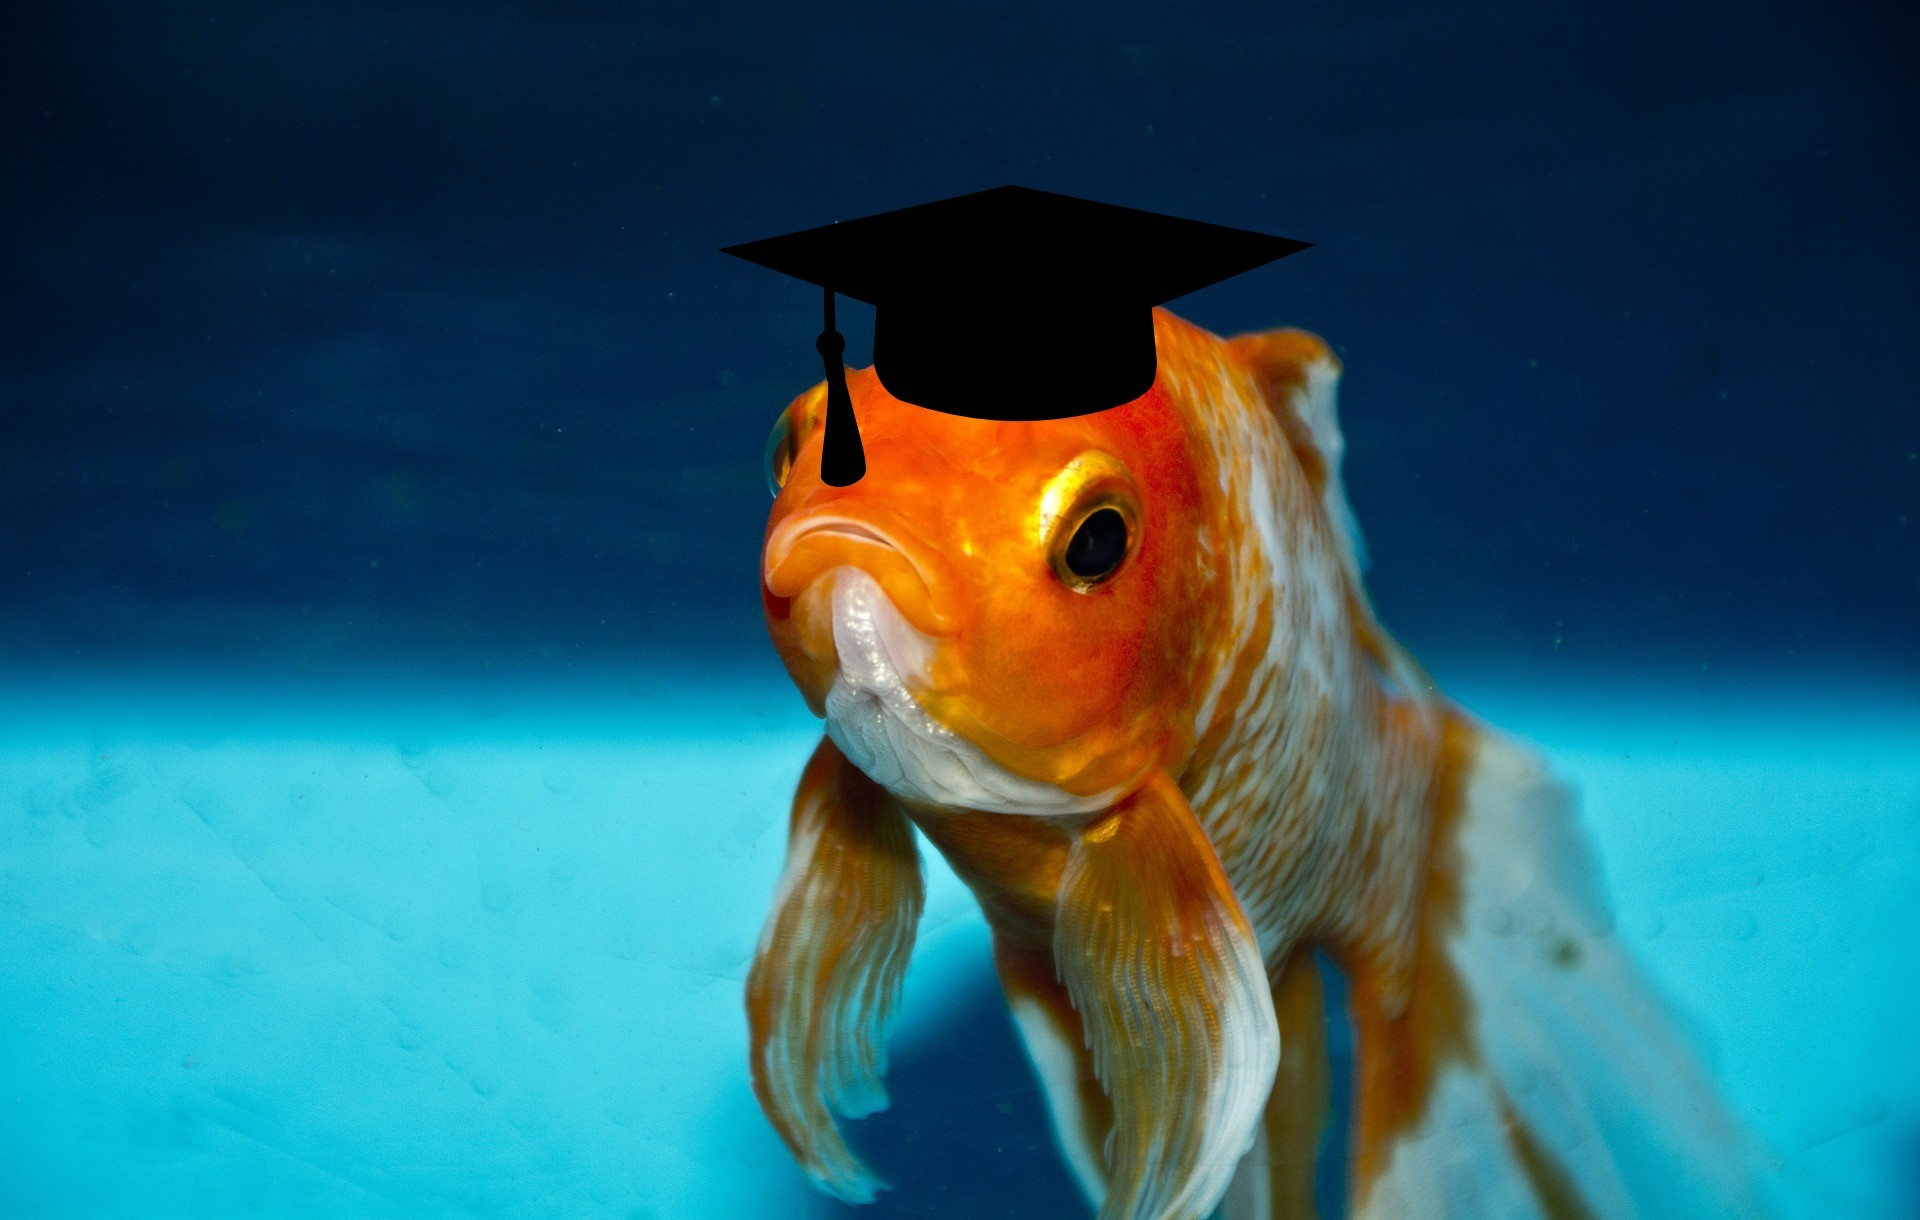 myth busting Monday - goldfish wearing a mortar board